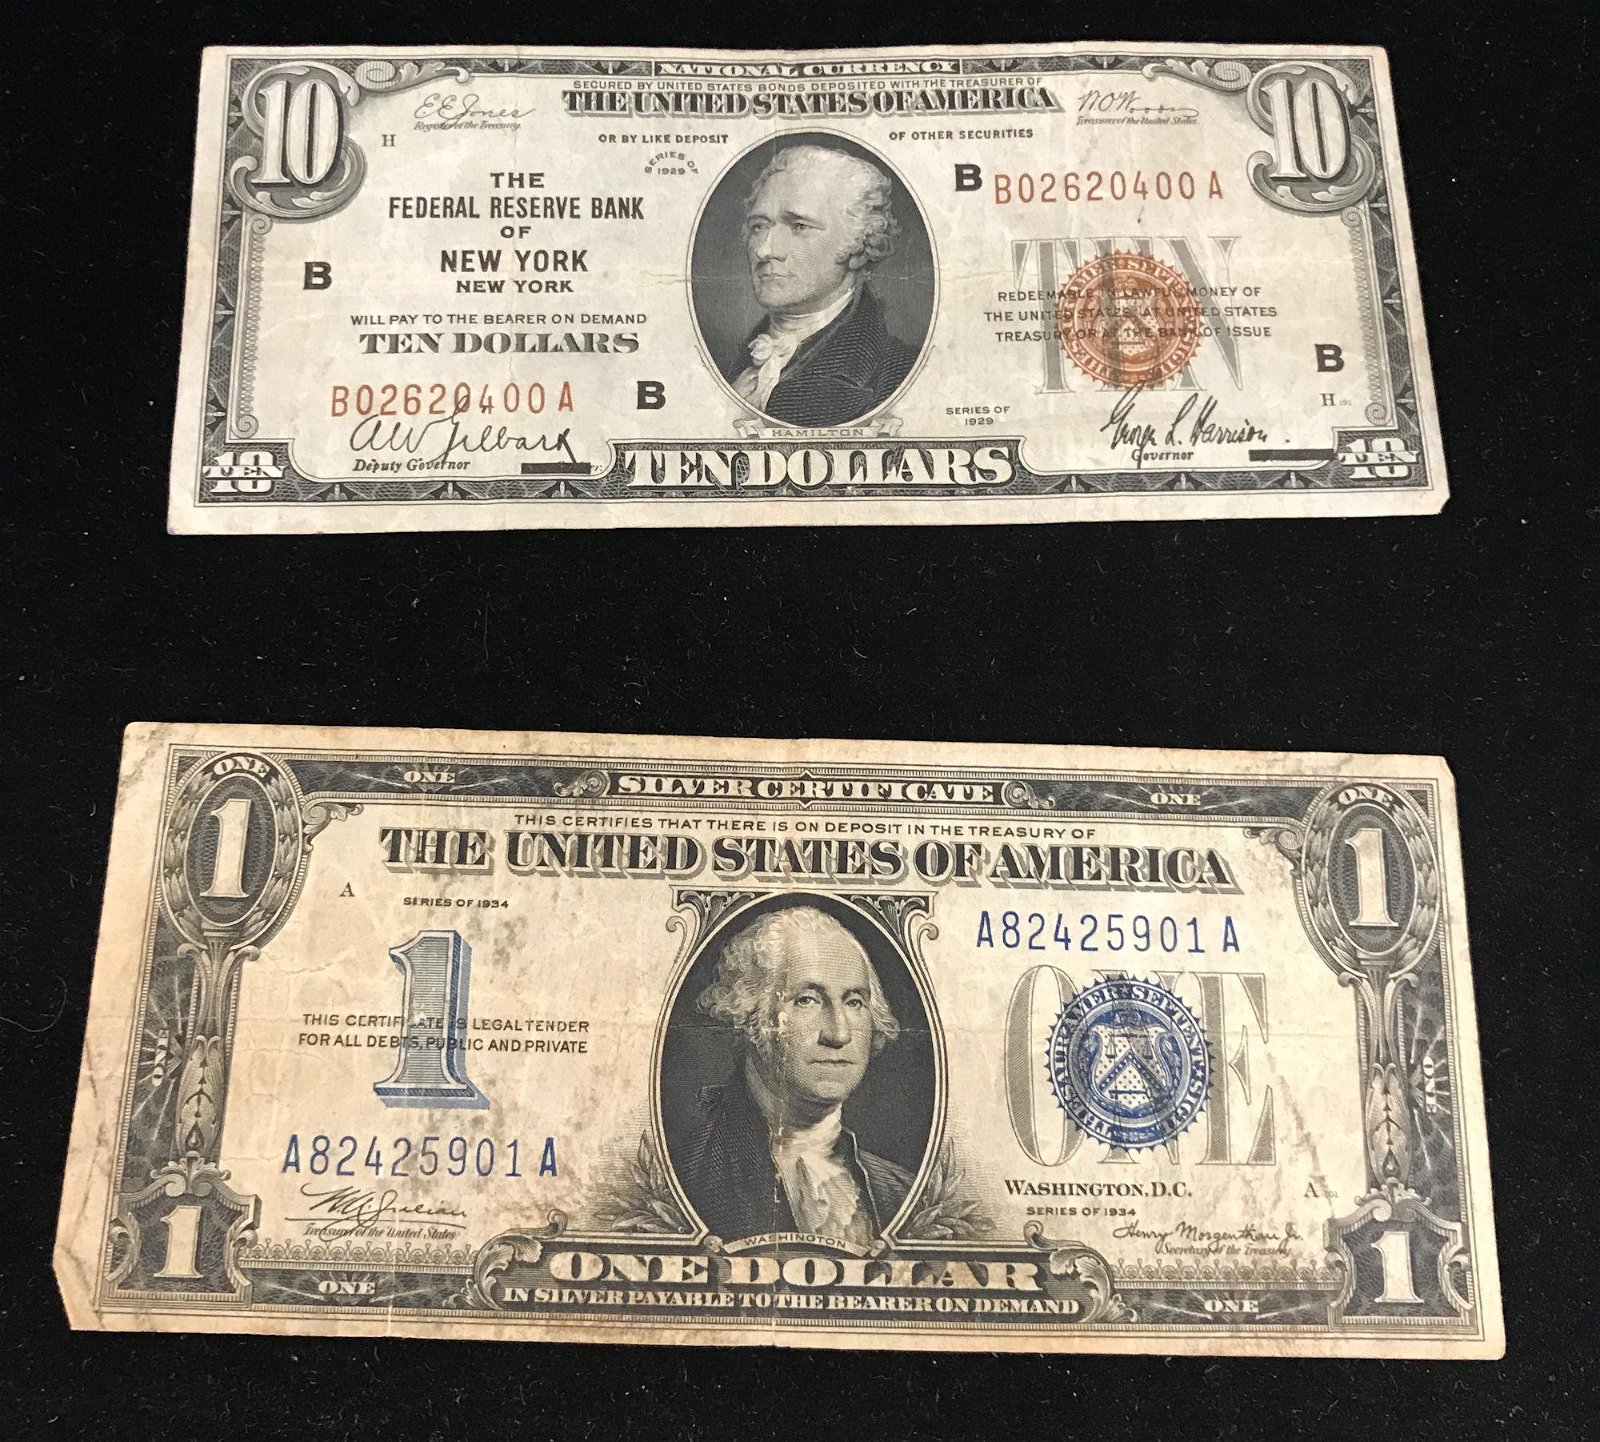 """SERIES 1929 $10 NATIONAL CURRENCY NOTE """"FEDERAL RESERVE"""